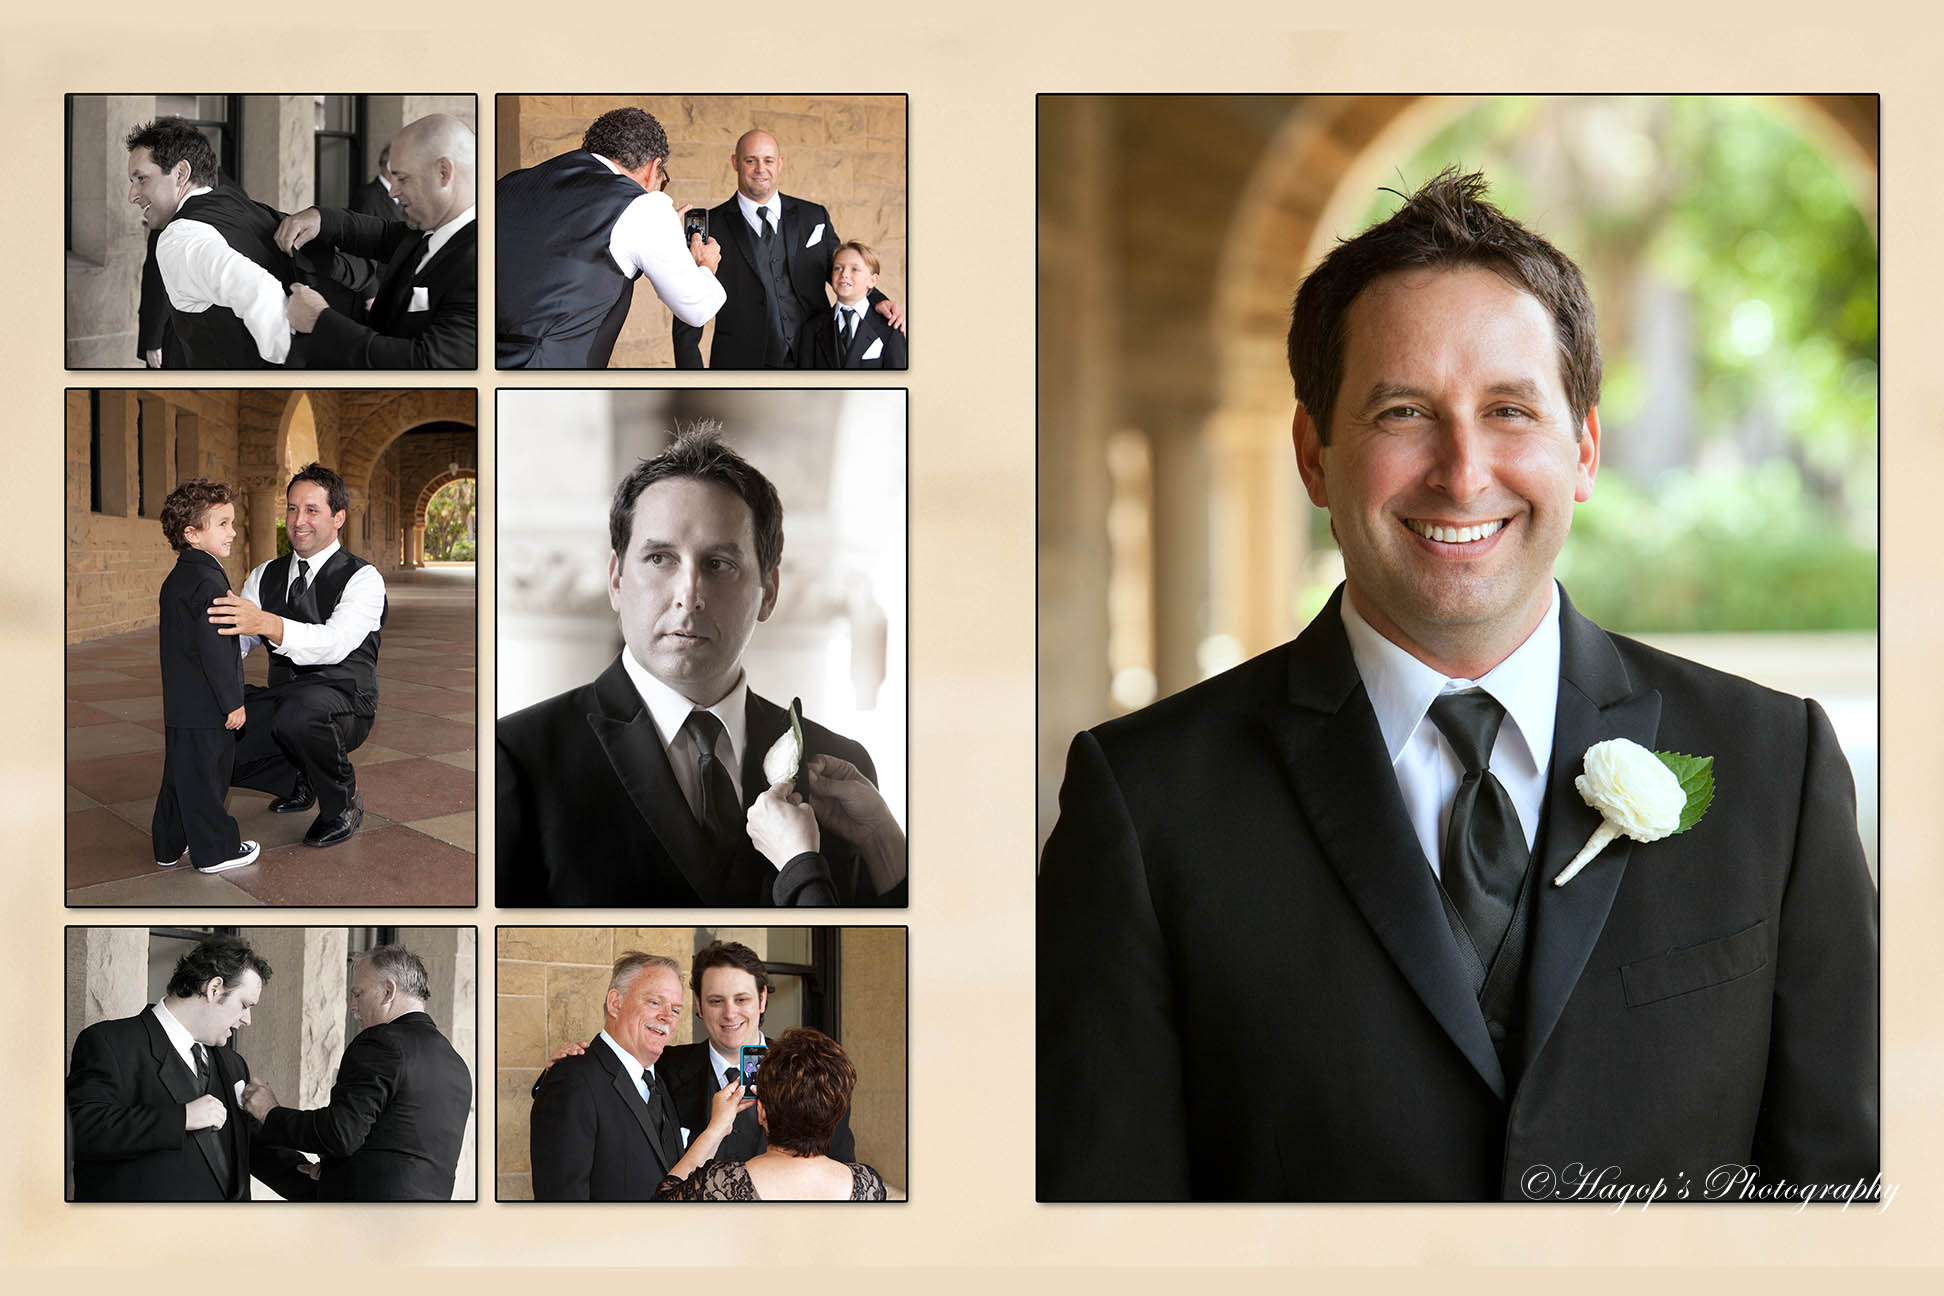 magazine style composite page of the grooms photos